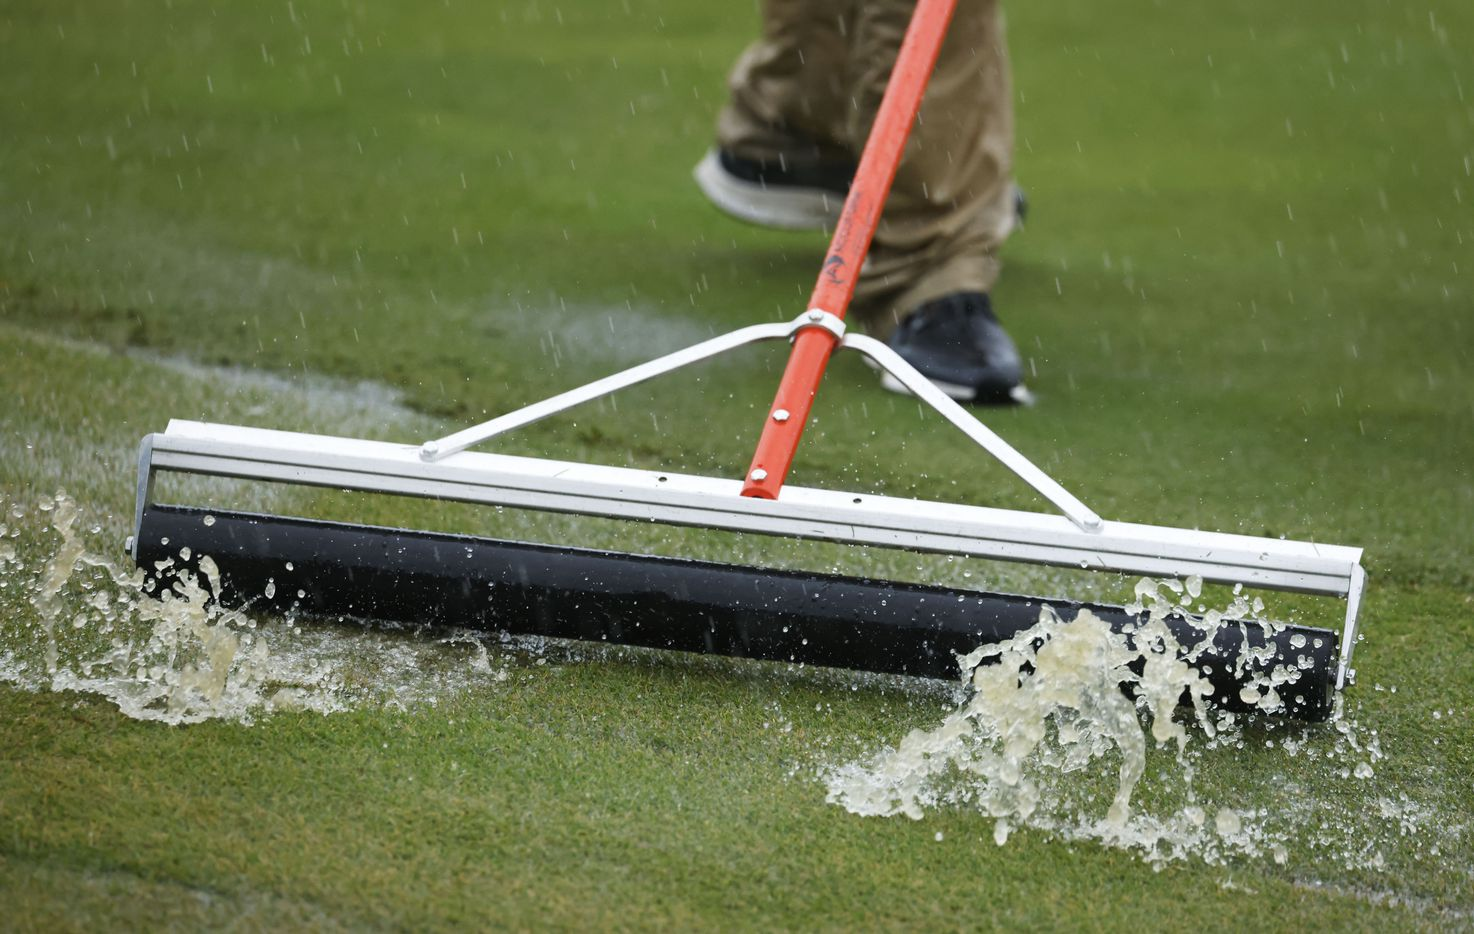 Rainwater is pushed off the green on the 17th hole during round 4 of the AT&T Byron Nelson  at TPC Craig Ranch on Saturday, May 16, 2021 in McKinney, Texas. (Vernon Bryant/The Dallas Morning News)